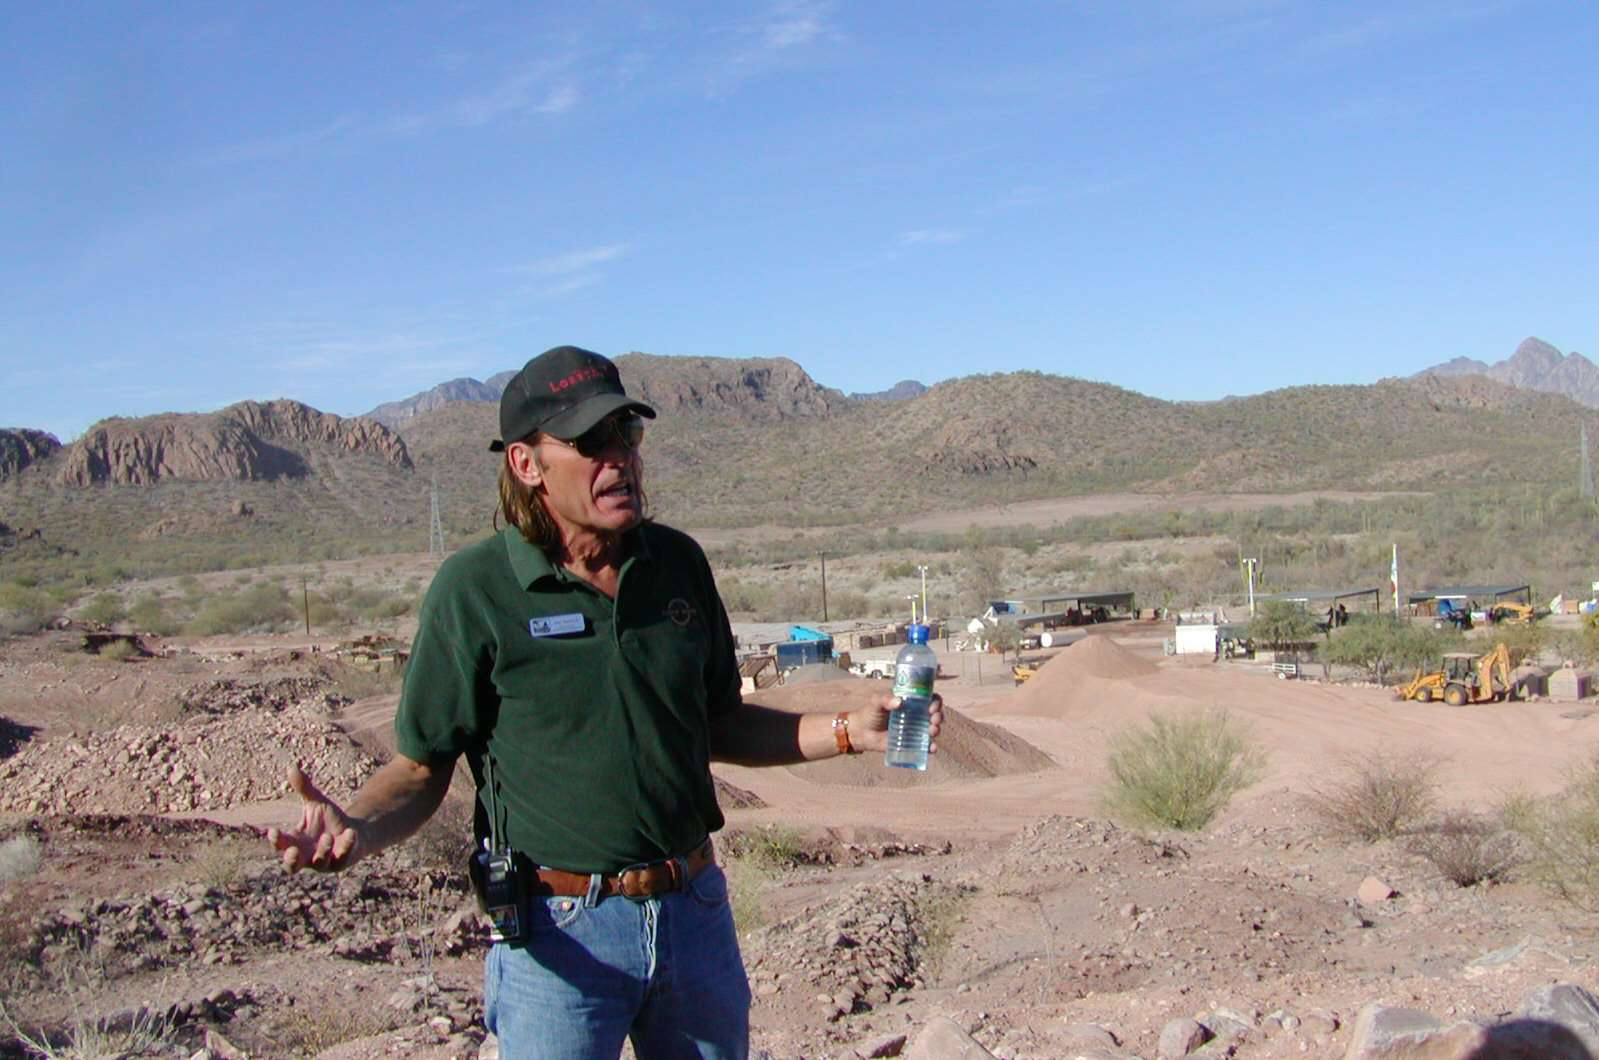 white man, long hair, gesturing with water bottle in a sandy, mountainous environment